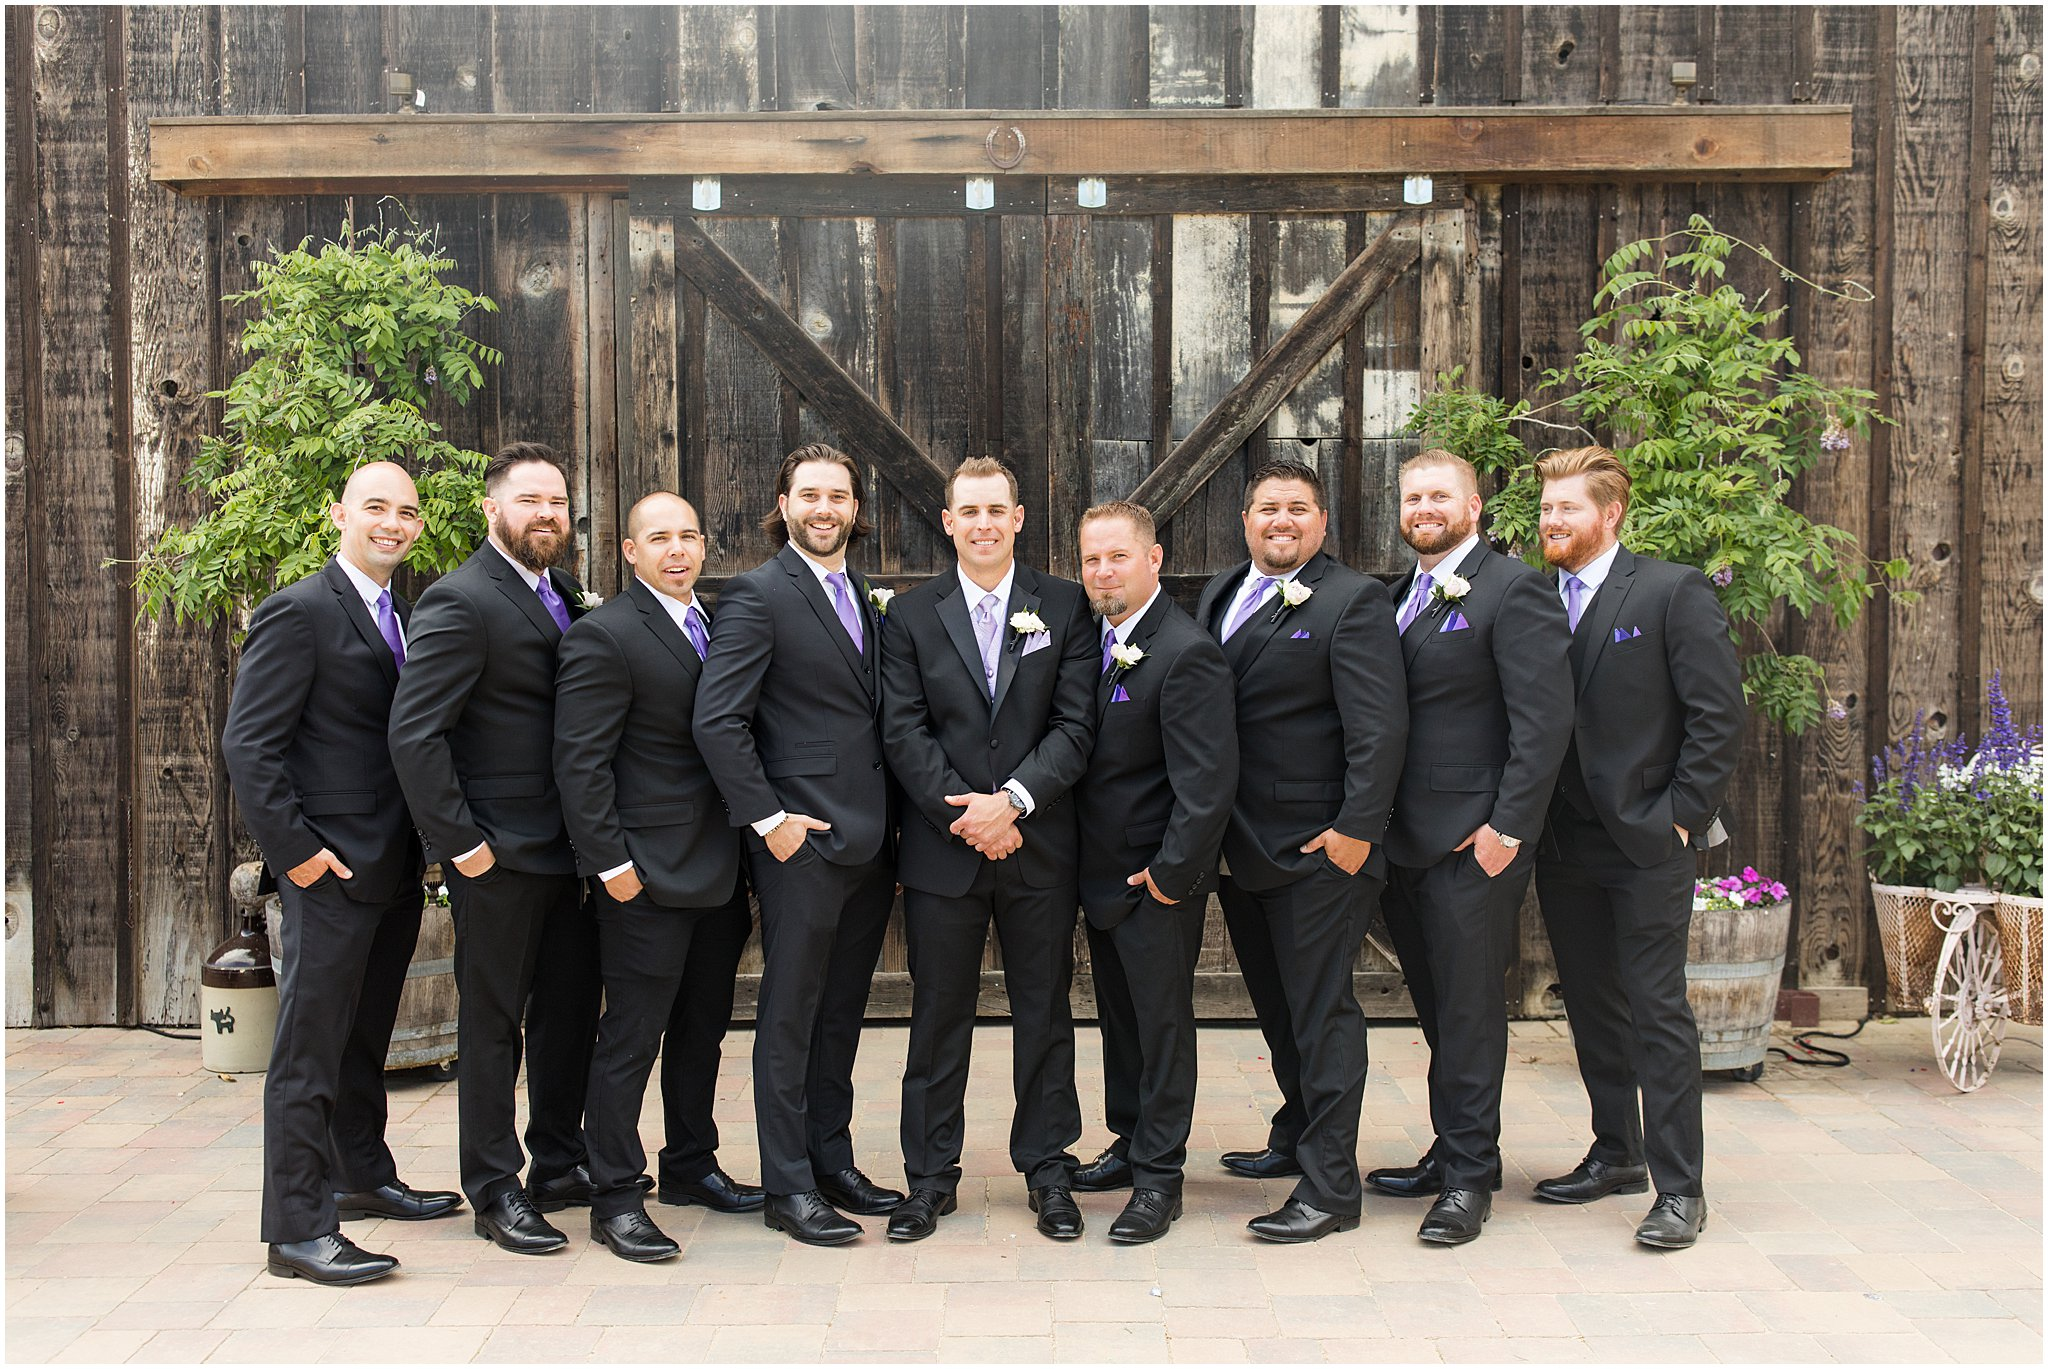 2019 wedding san juan bautista hacienda de leal vineyards bay area wedding photographer_0032.jpg